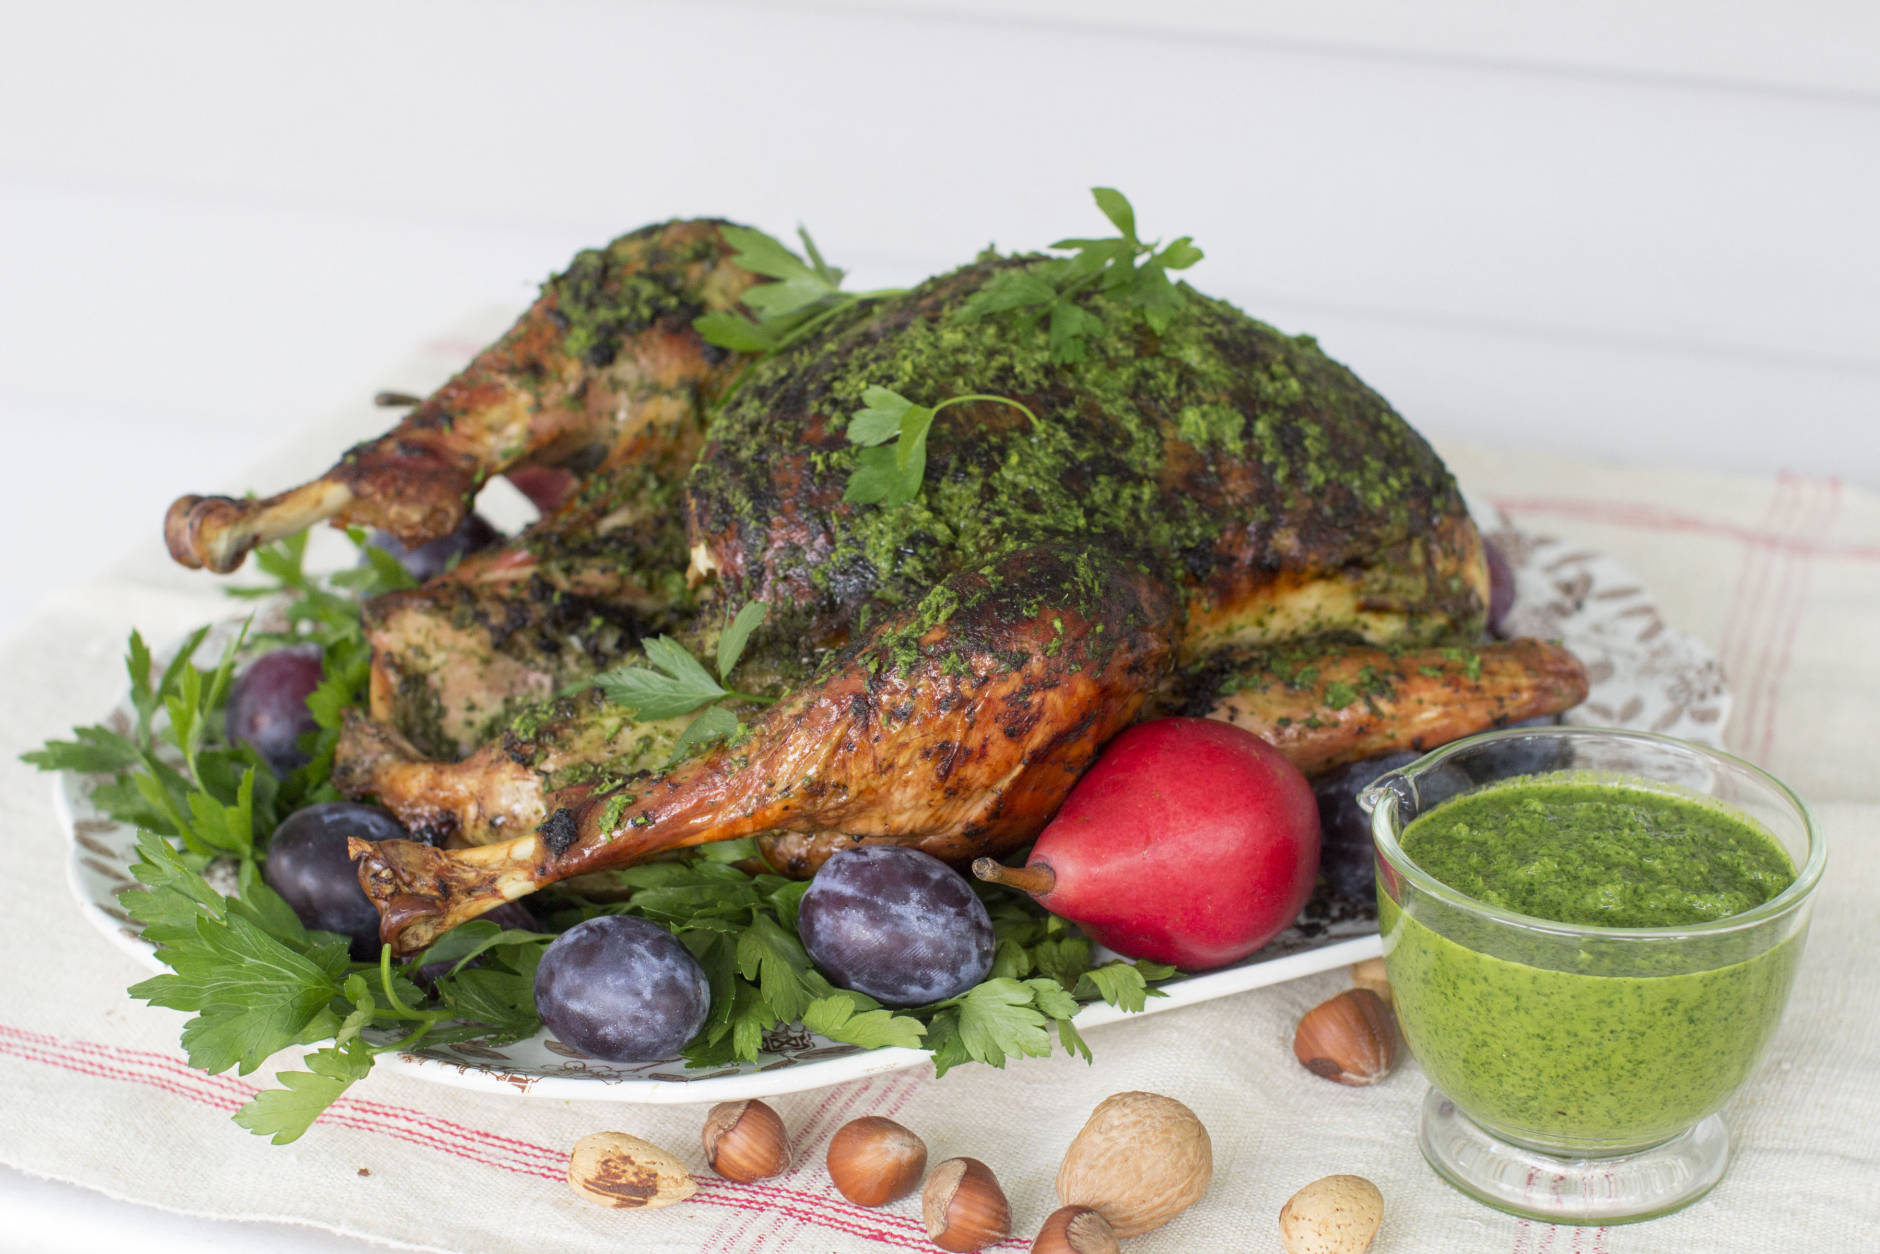 This Sept. 29, 2014, photo shows herb roasted Thanksgiving turkey in Concord, N.H. The inspiration for the turkey came from South American chimichurri, a richly herby sauce that pairs beautifully with roasted meats. (AP Photo/Matthew Mead)